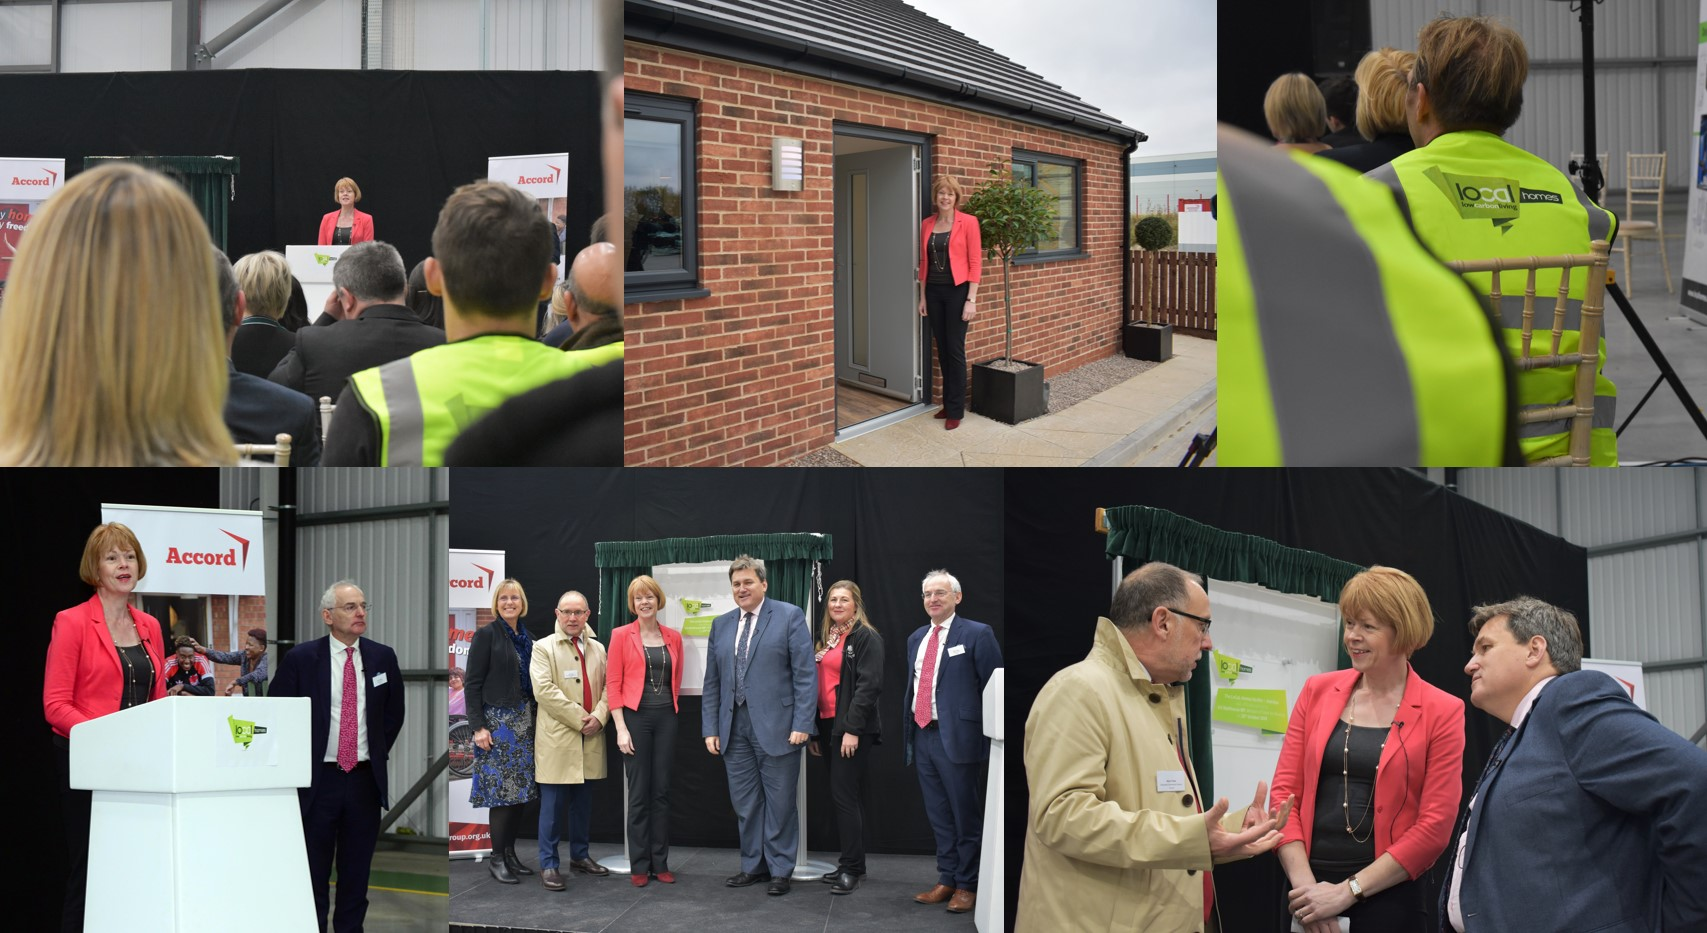 Welcoming new business and new jobs for Aldridge